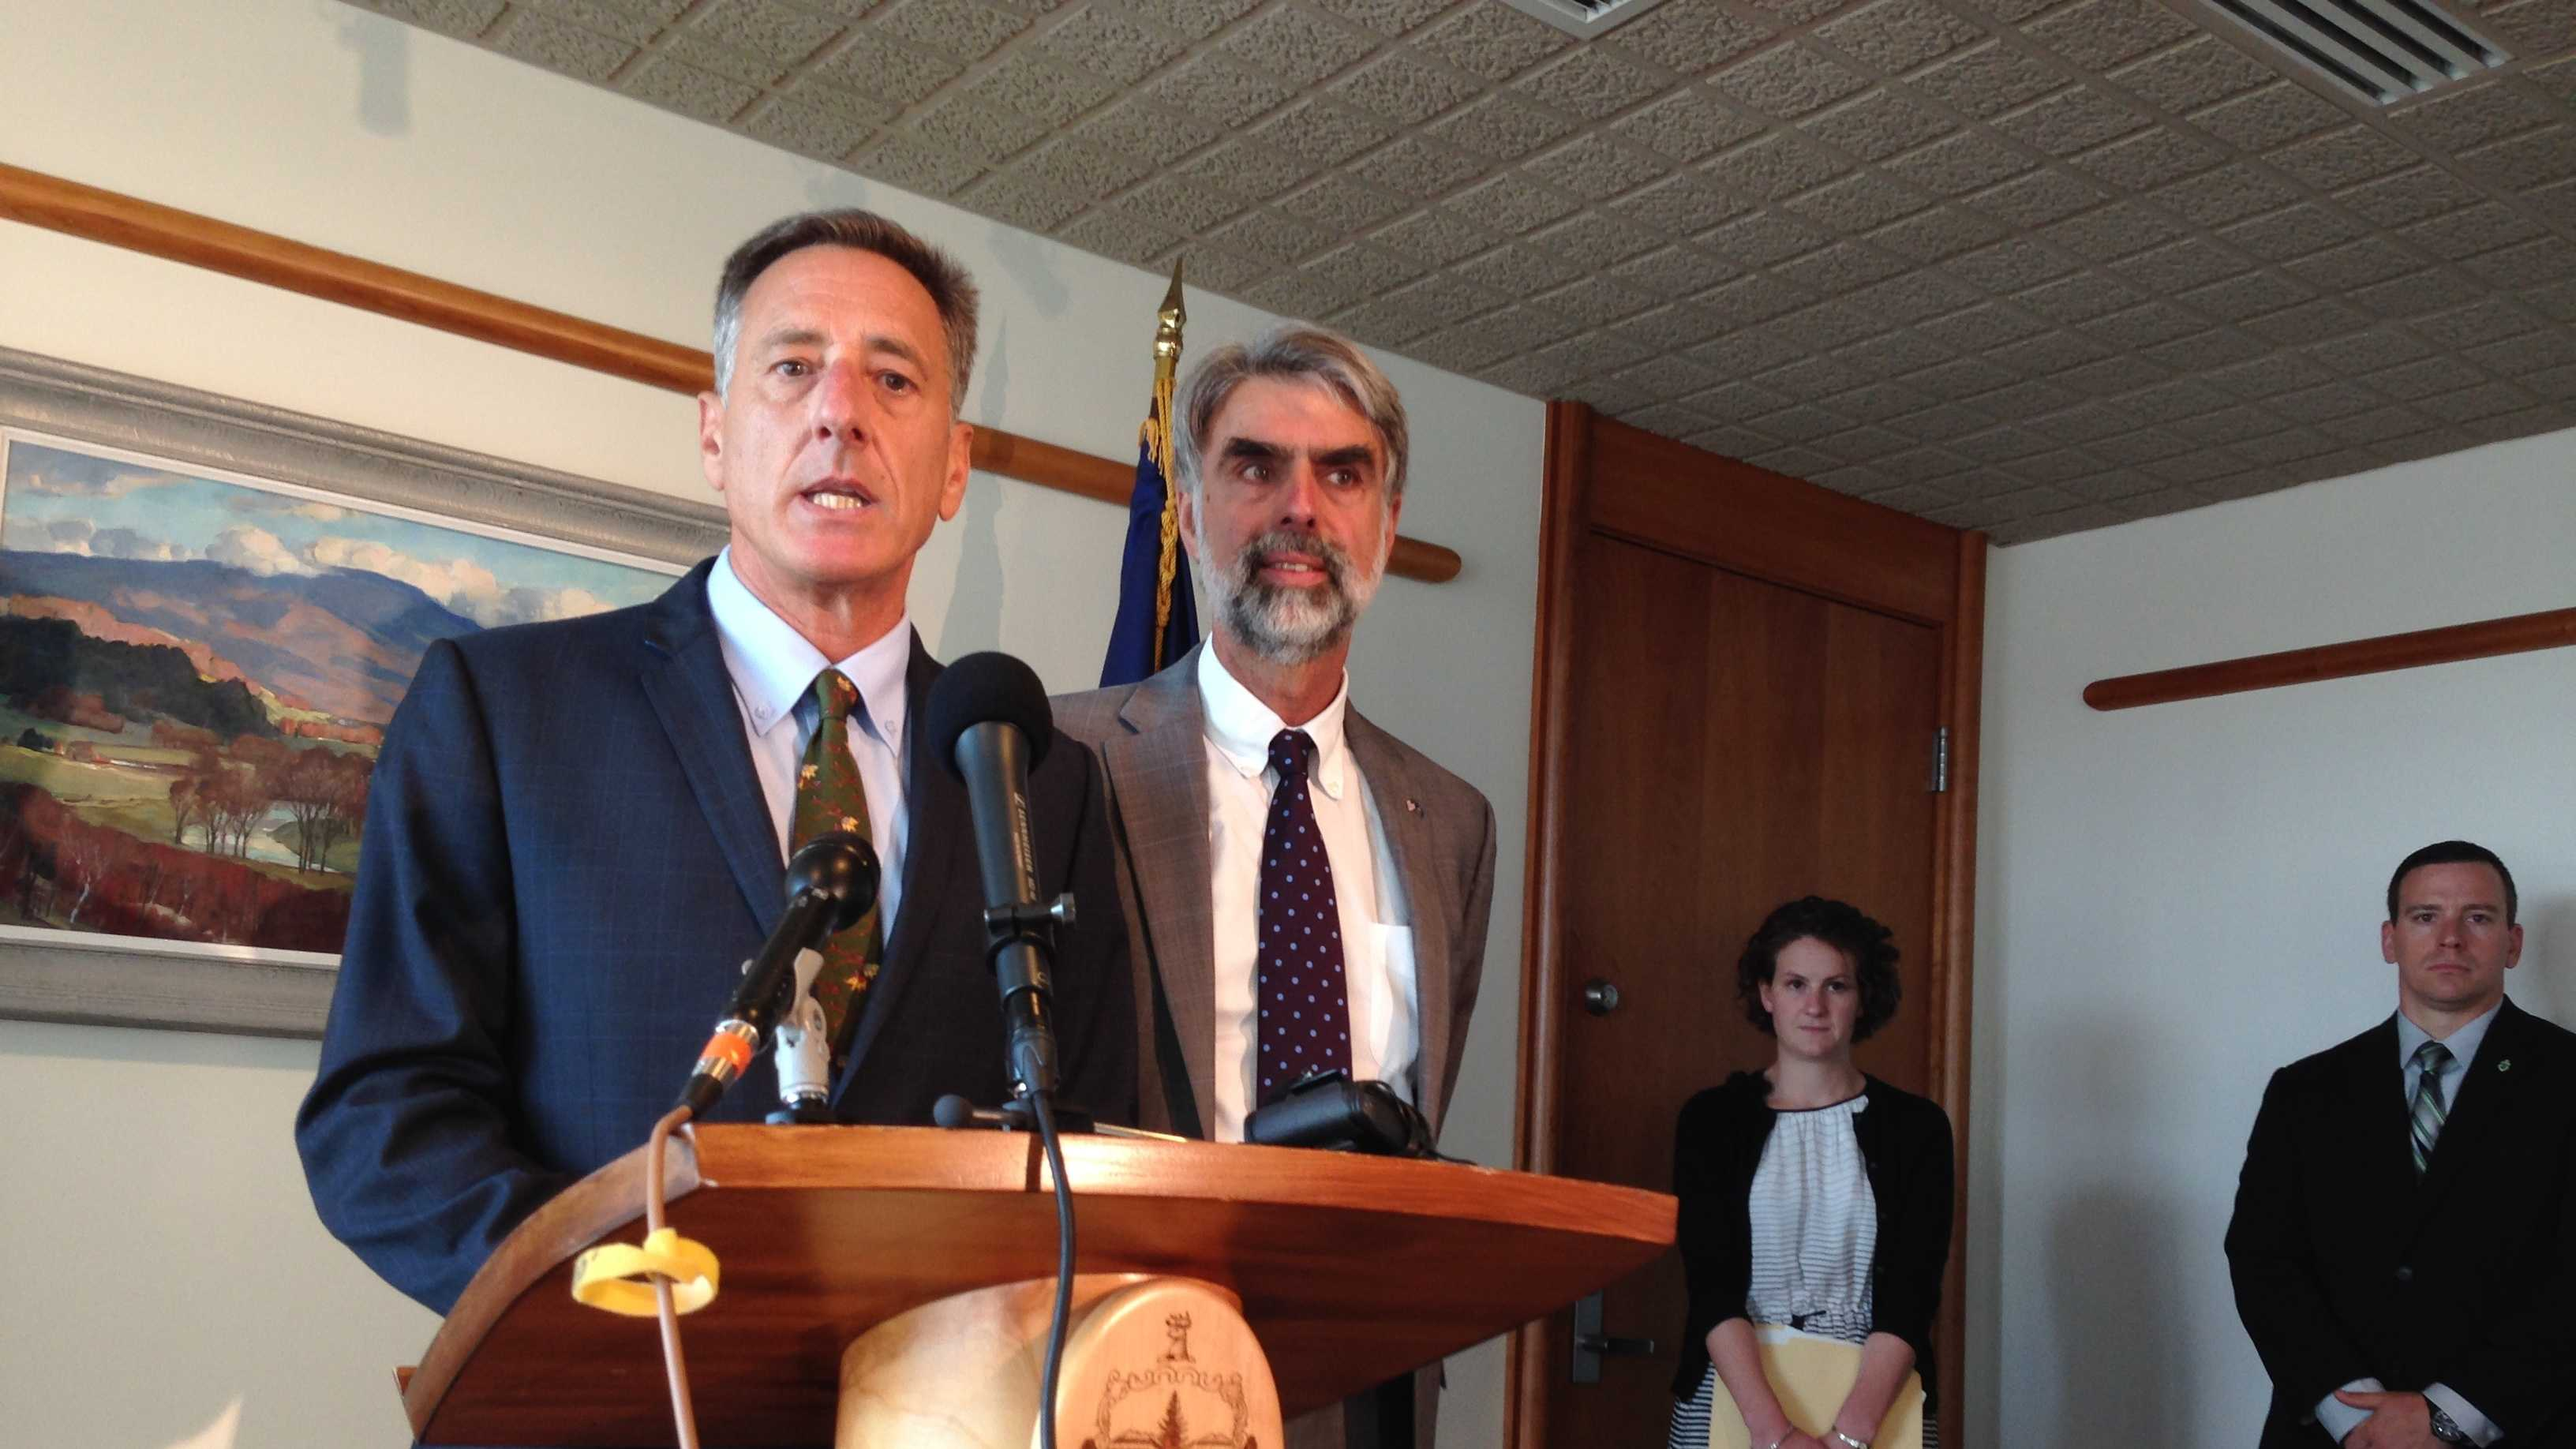 Gov. Peter Shumlin and Administration Secretary Jeb Spaulding announced need for state spending cuts July 24.